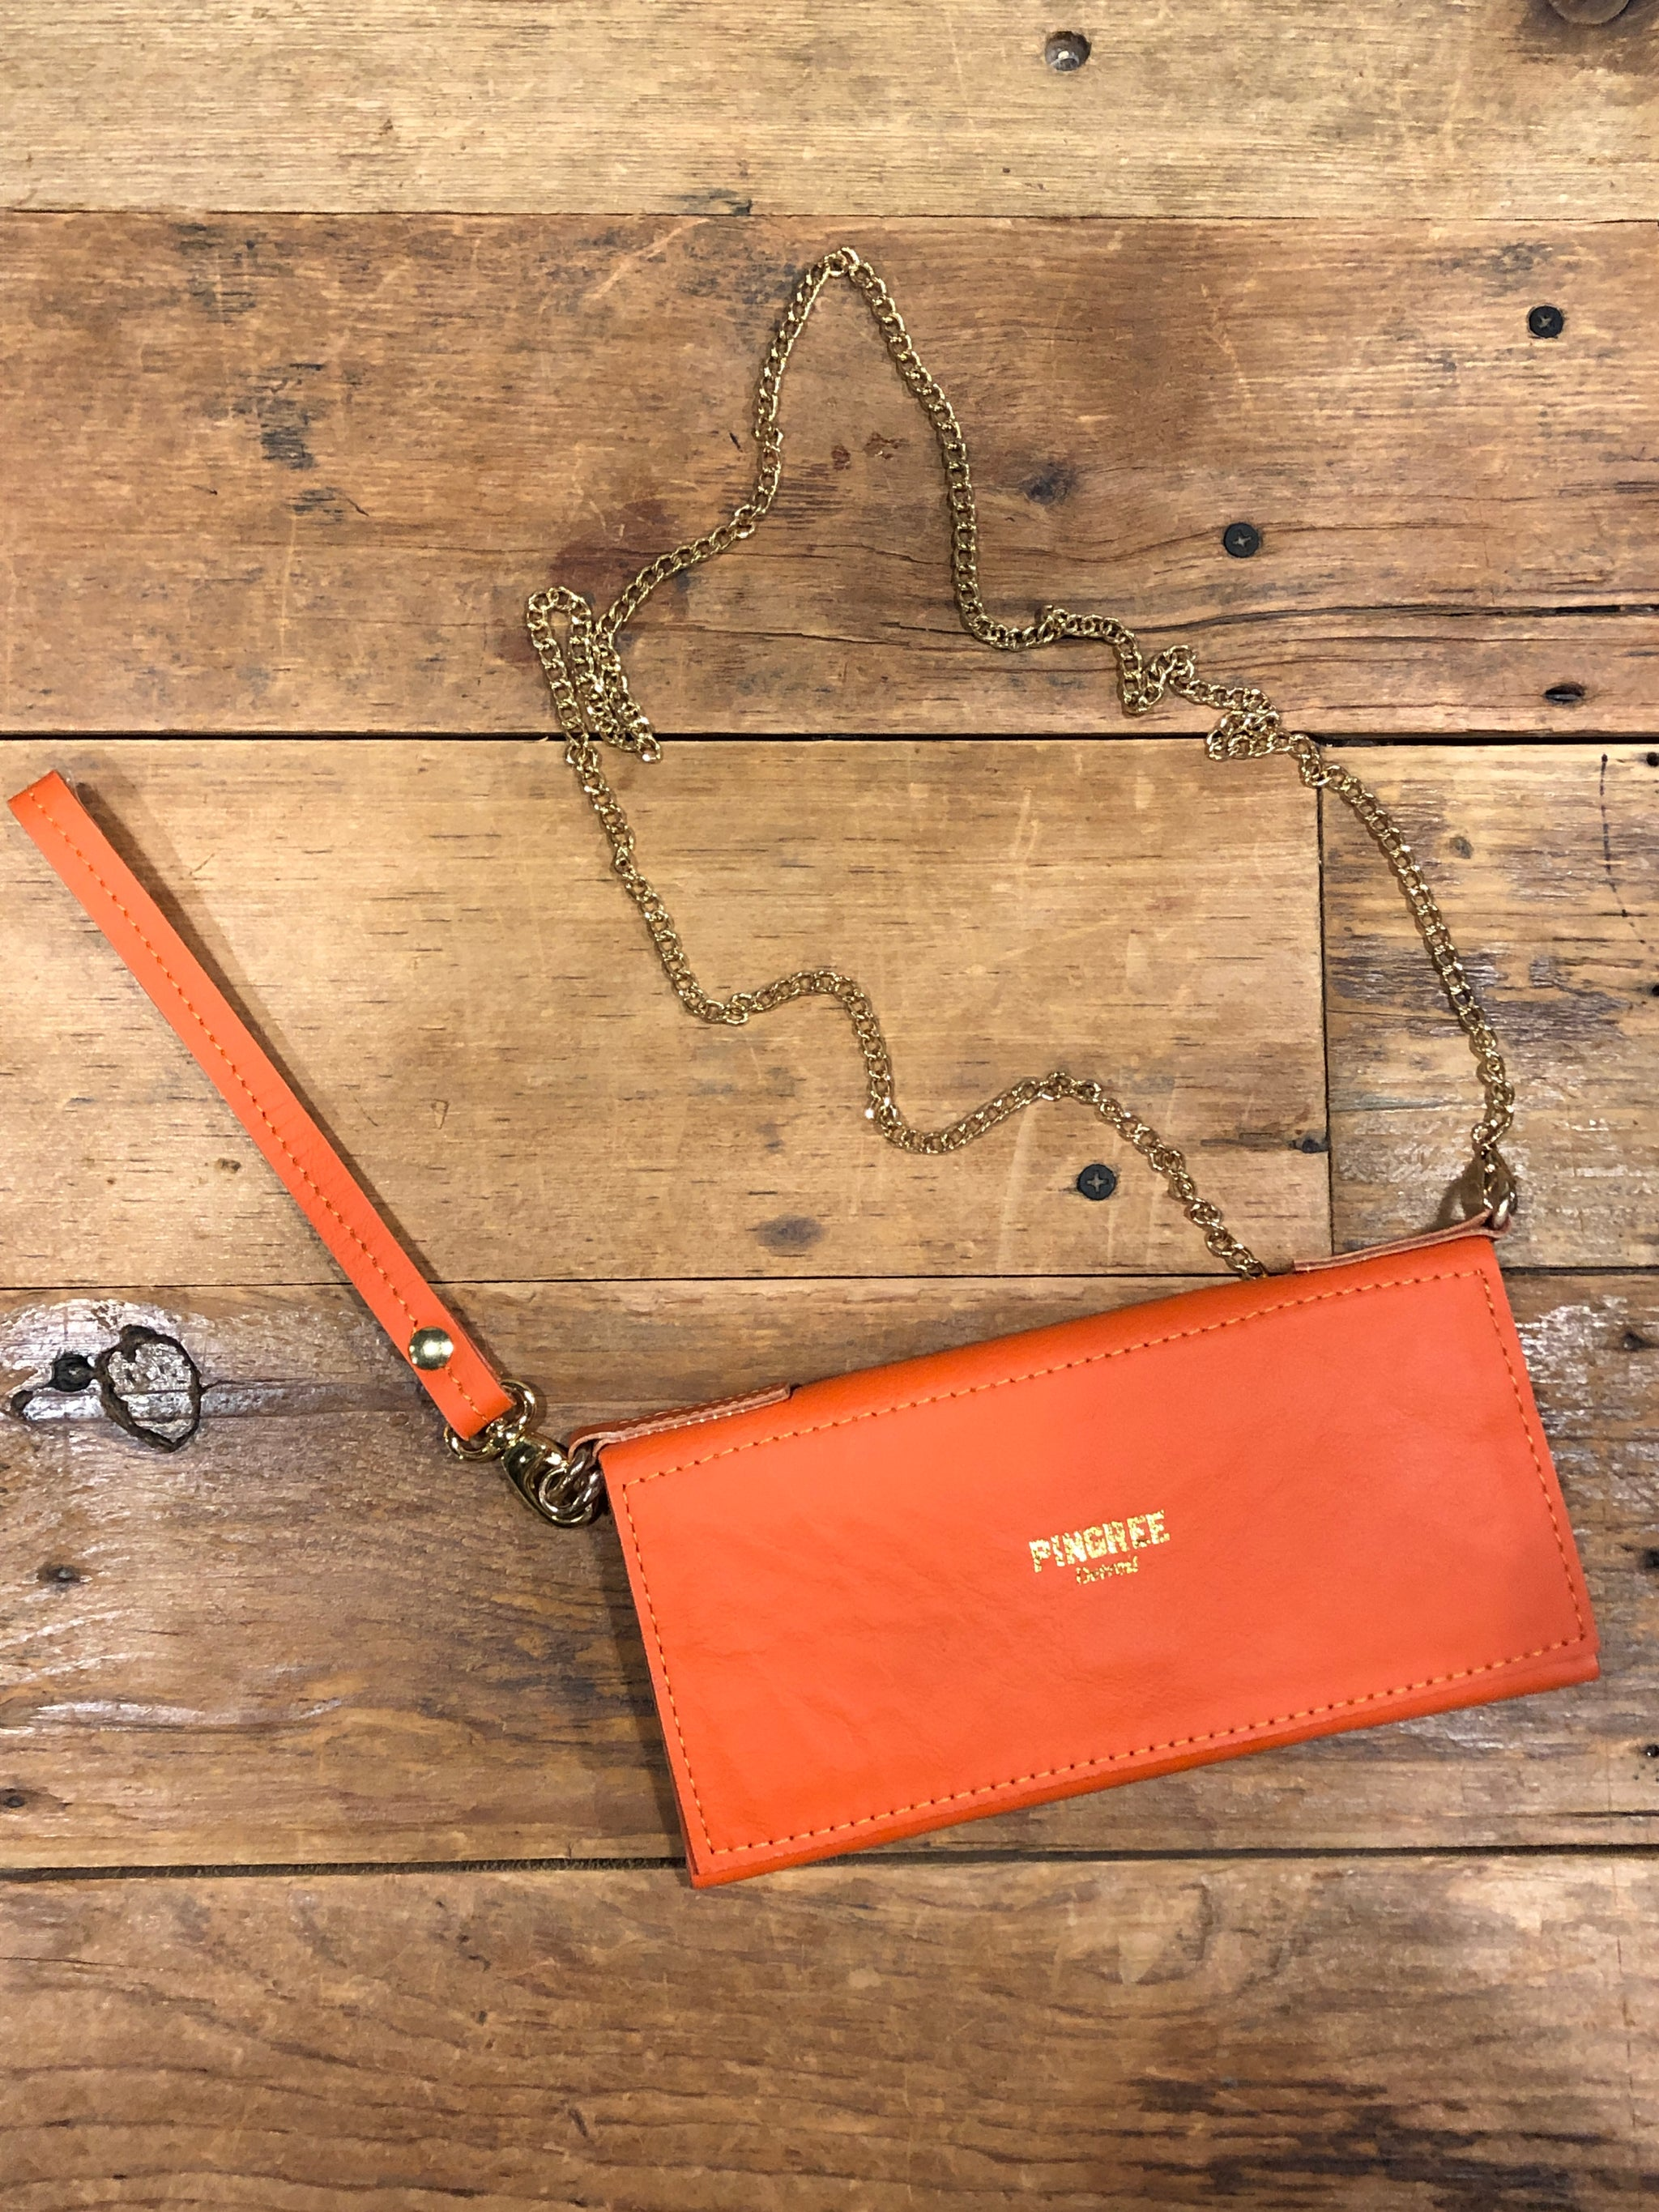 Pingree Adeline Clutch / Orange